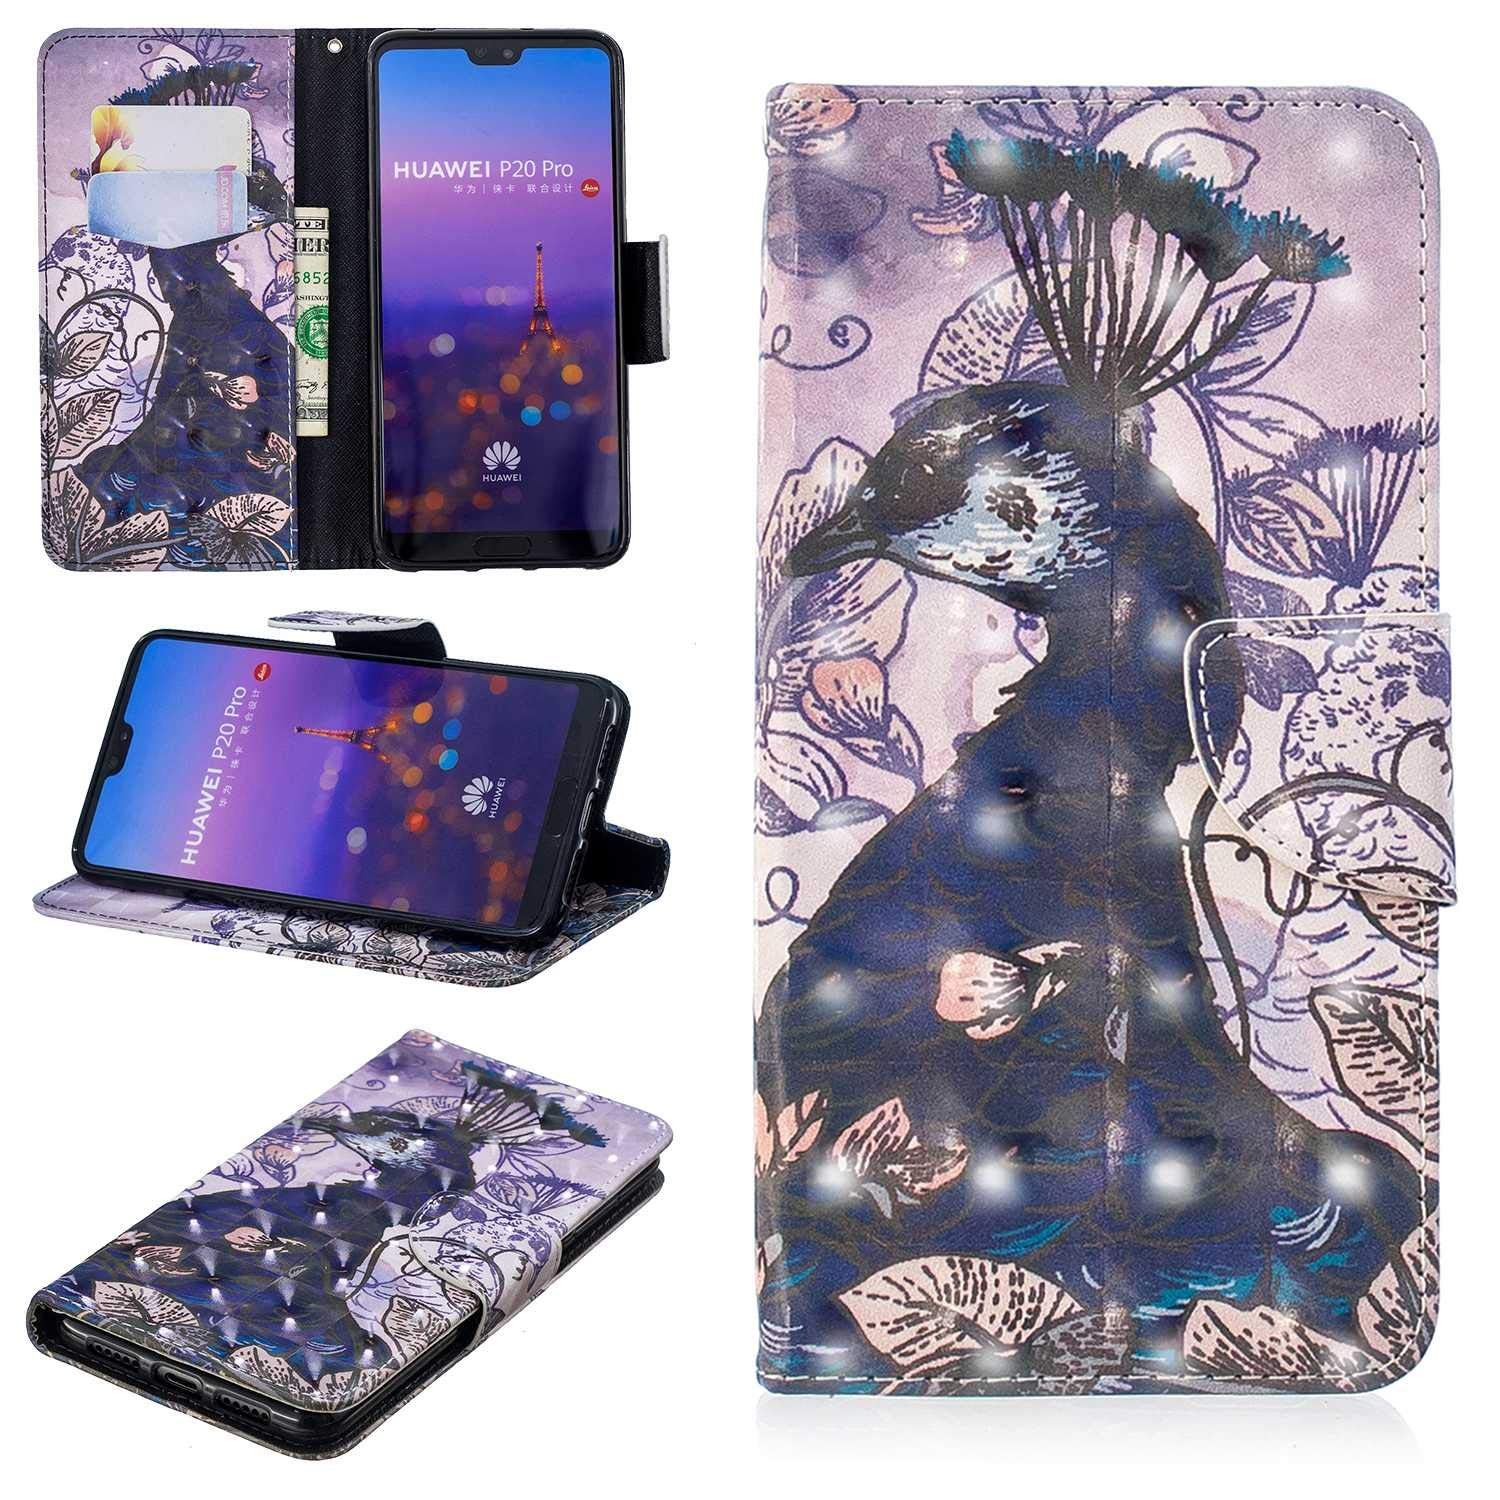 CUSKING Huawei P20 Pro Case, Premium 3D Design Wallet Case Stand Flip Case with Card Holders and Magnetic Closure, Multi-Functional Shockproof Case for Huawei P20 Pro - Peacock